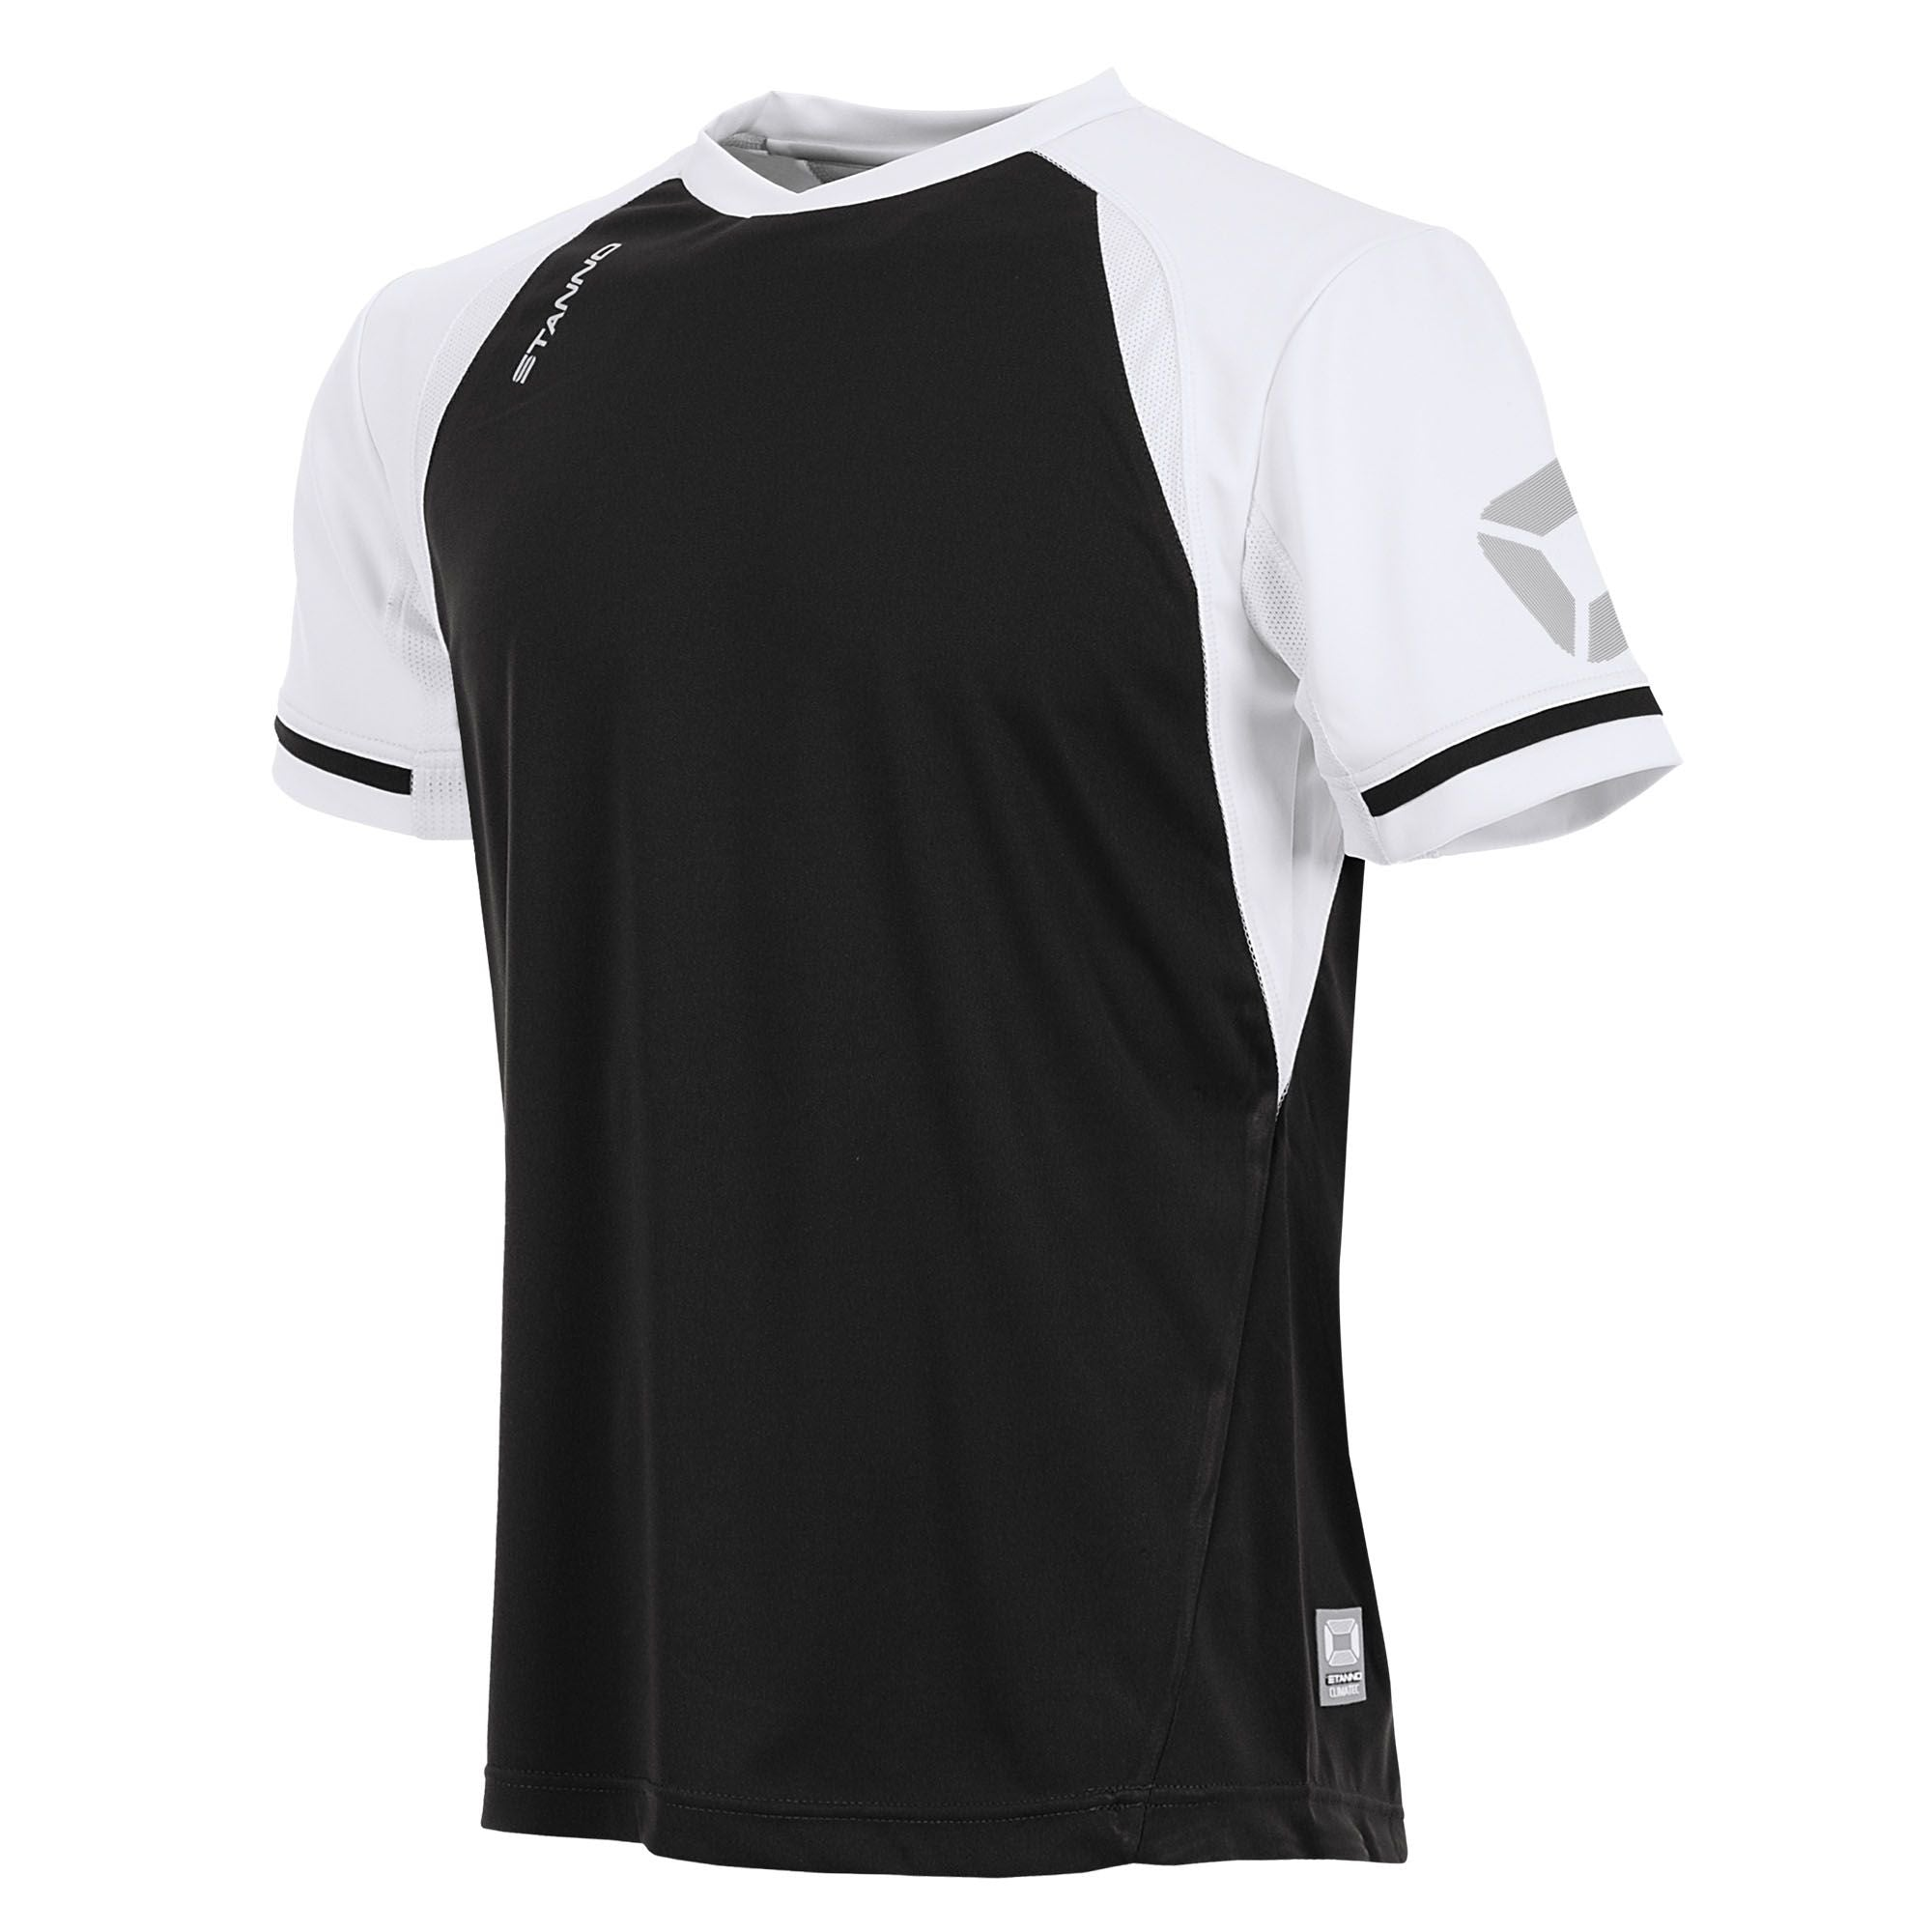 short sleeved Stanno Liga shirt in black with contrast white sleeves and collar, Stadium logo on the sleeve.